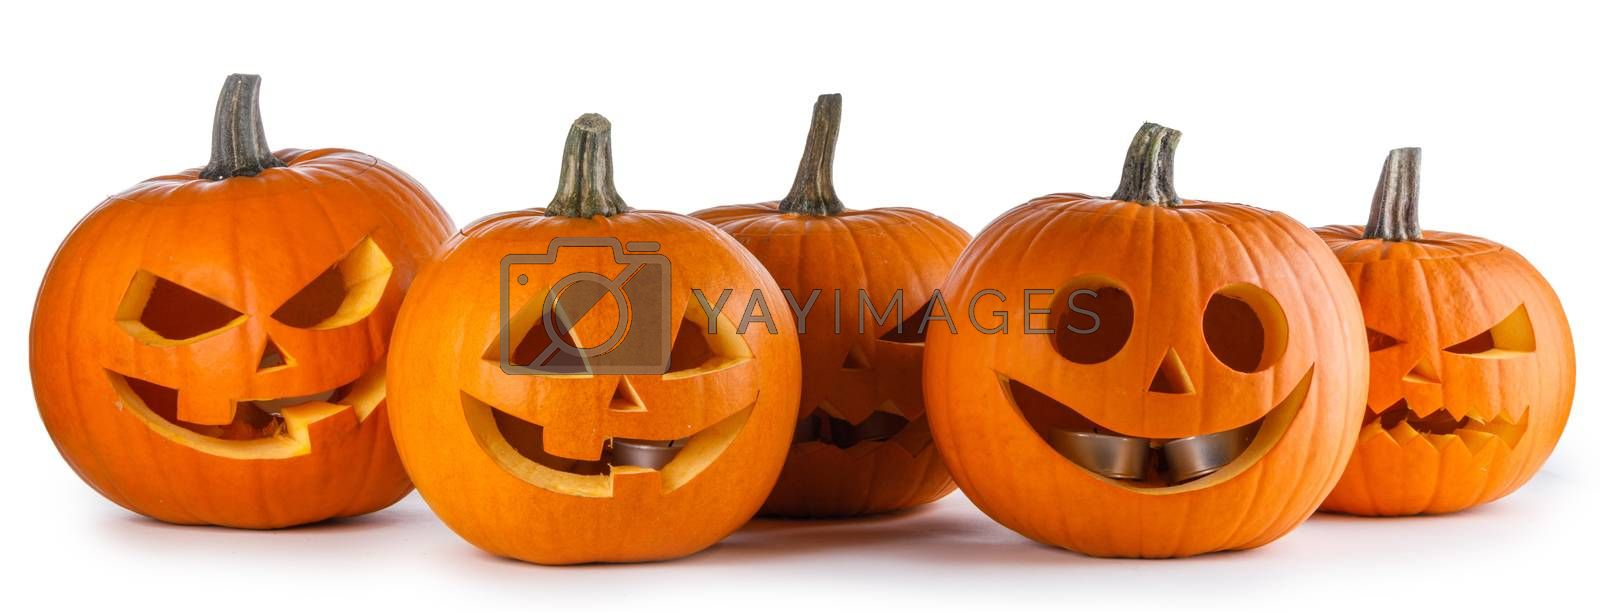 Five Halloween Pumpkins isolated on white background